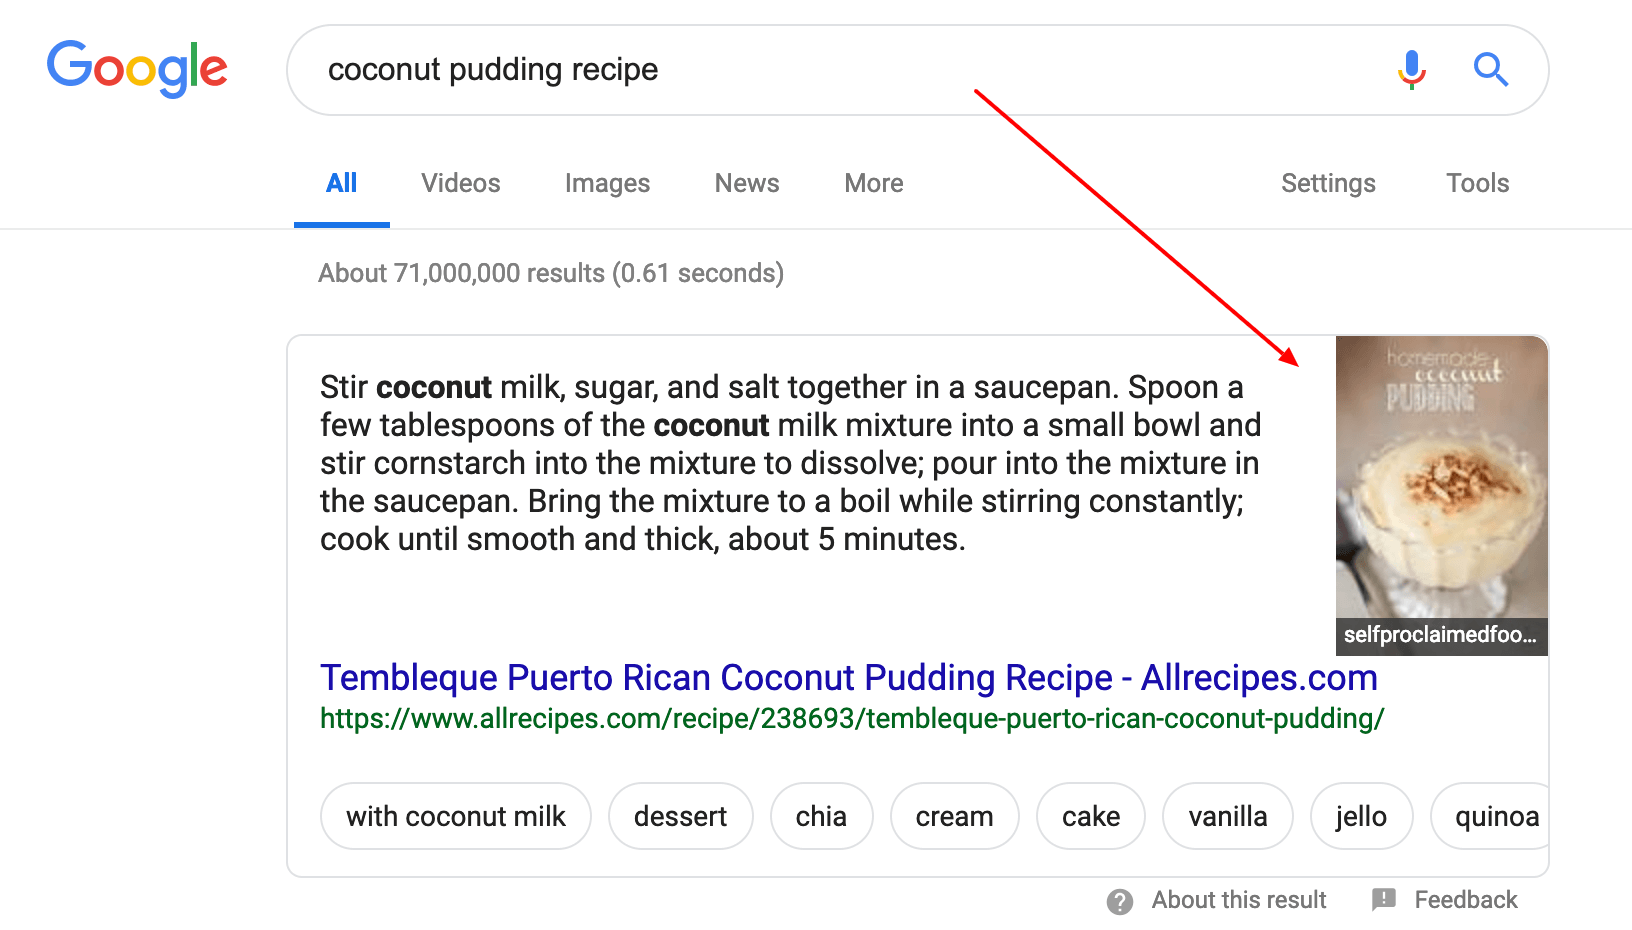 coconut-pudding-recipe-Google-Search-1 Image SEO Image optimization